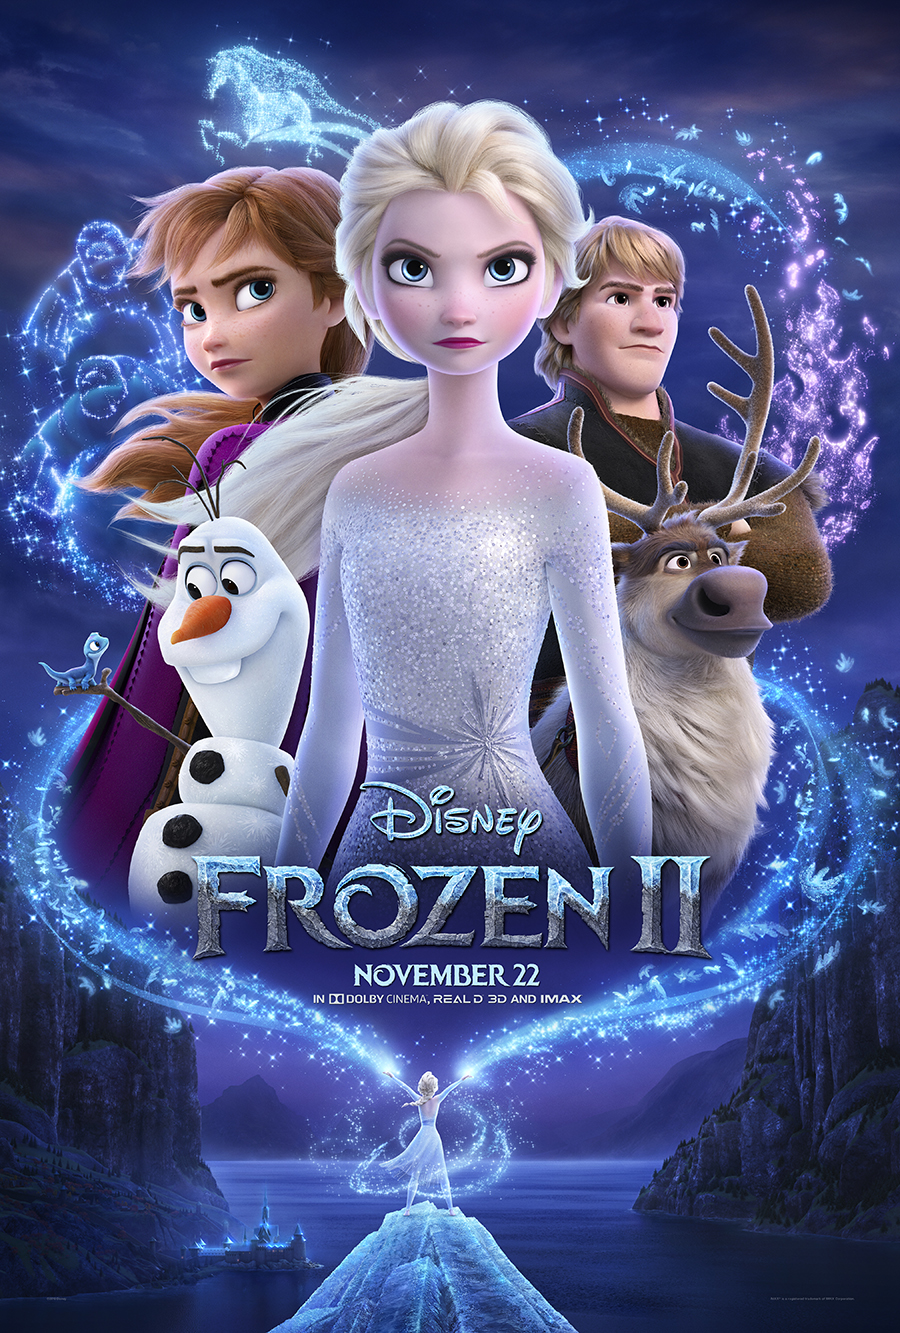 This mom's Frozen 2 review will answer ALL your questions......is it dark? Is it scary? Will my kids love it? It's must read before seeing Frozen 2.